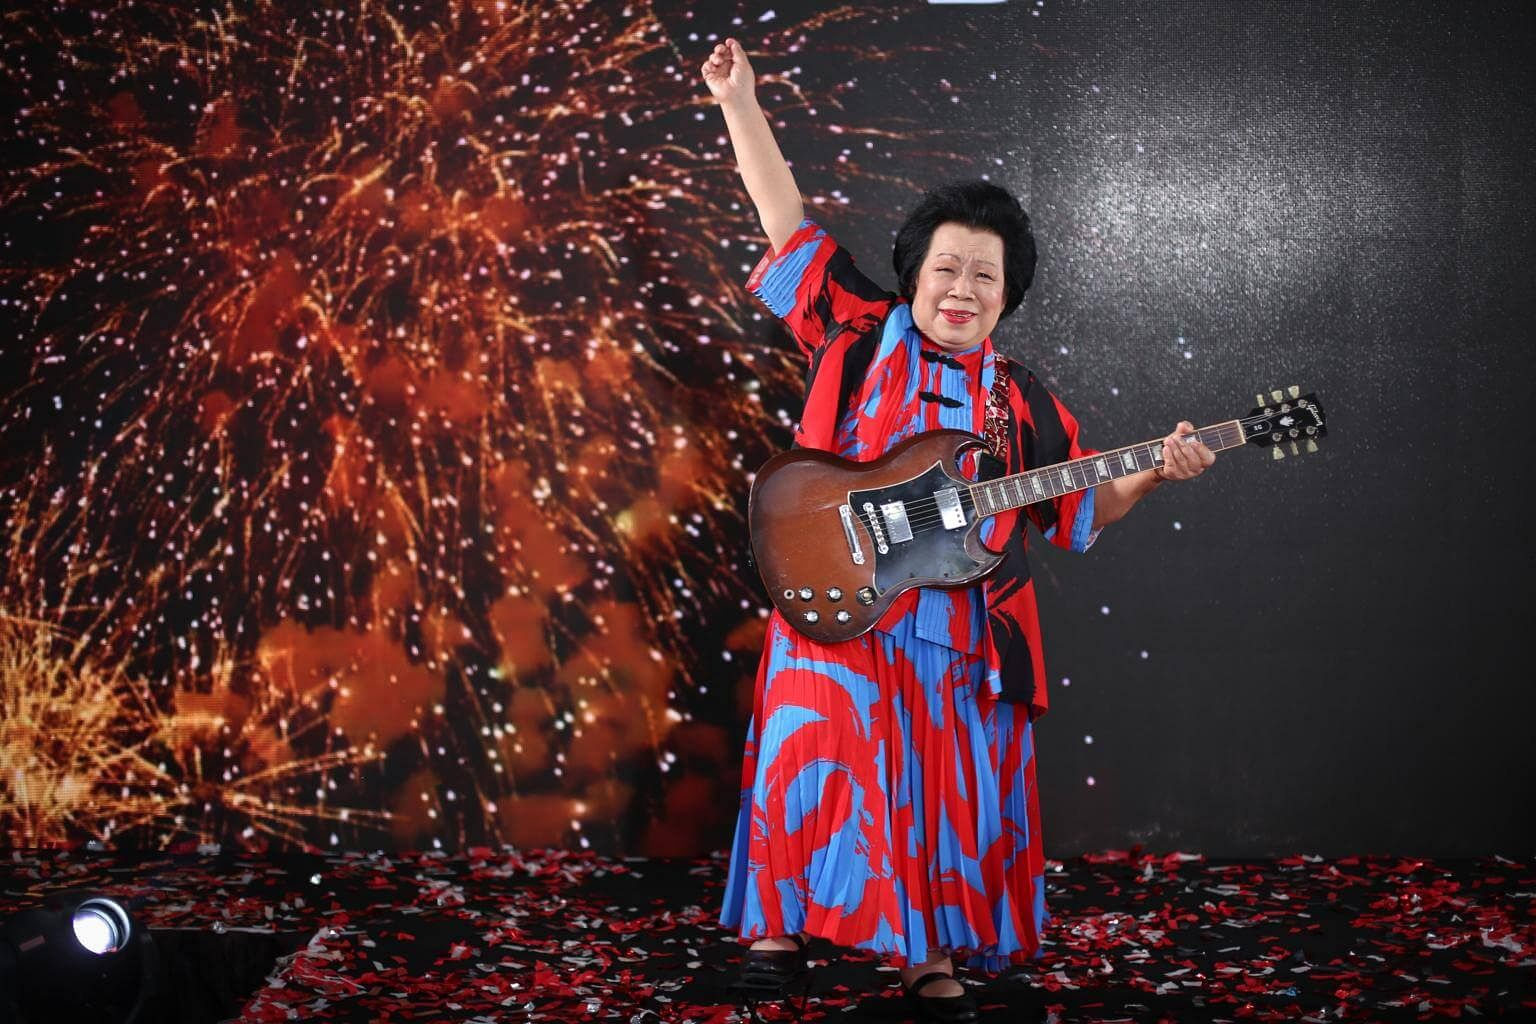 Grandma Ho will perform two songs with her guitar at this year's Singapore's National Day Parade. Image: Ong Wee Jin/The Straits Times